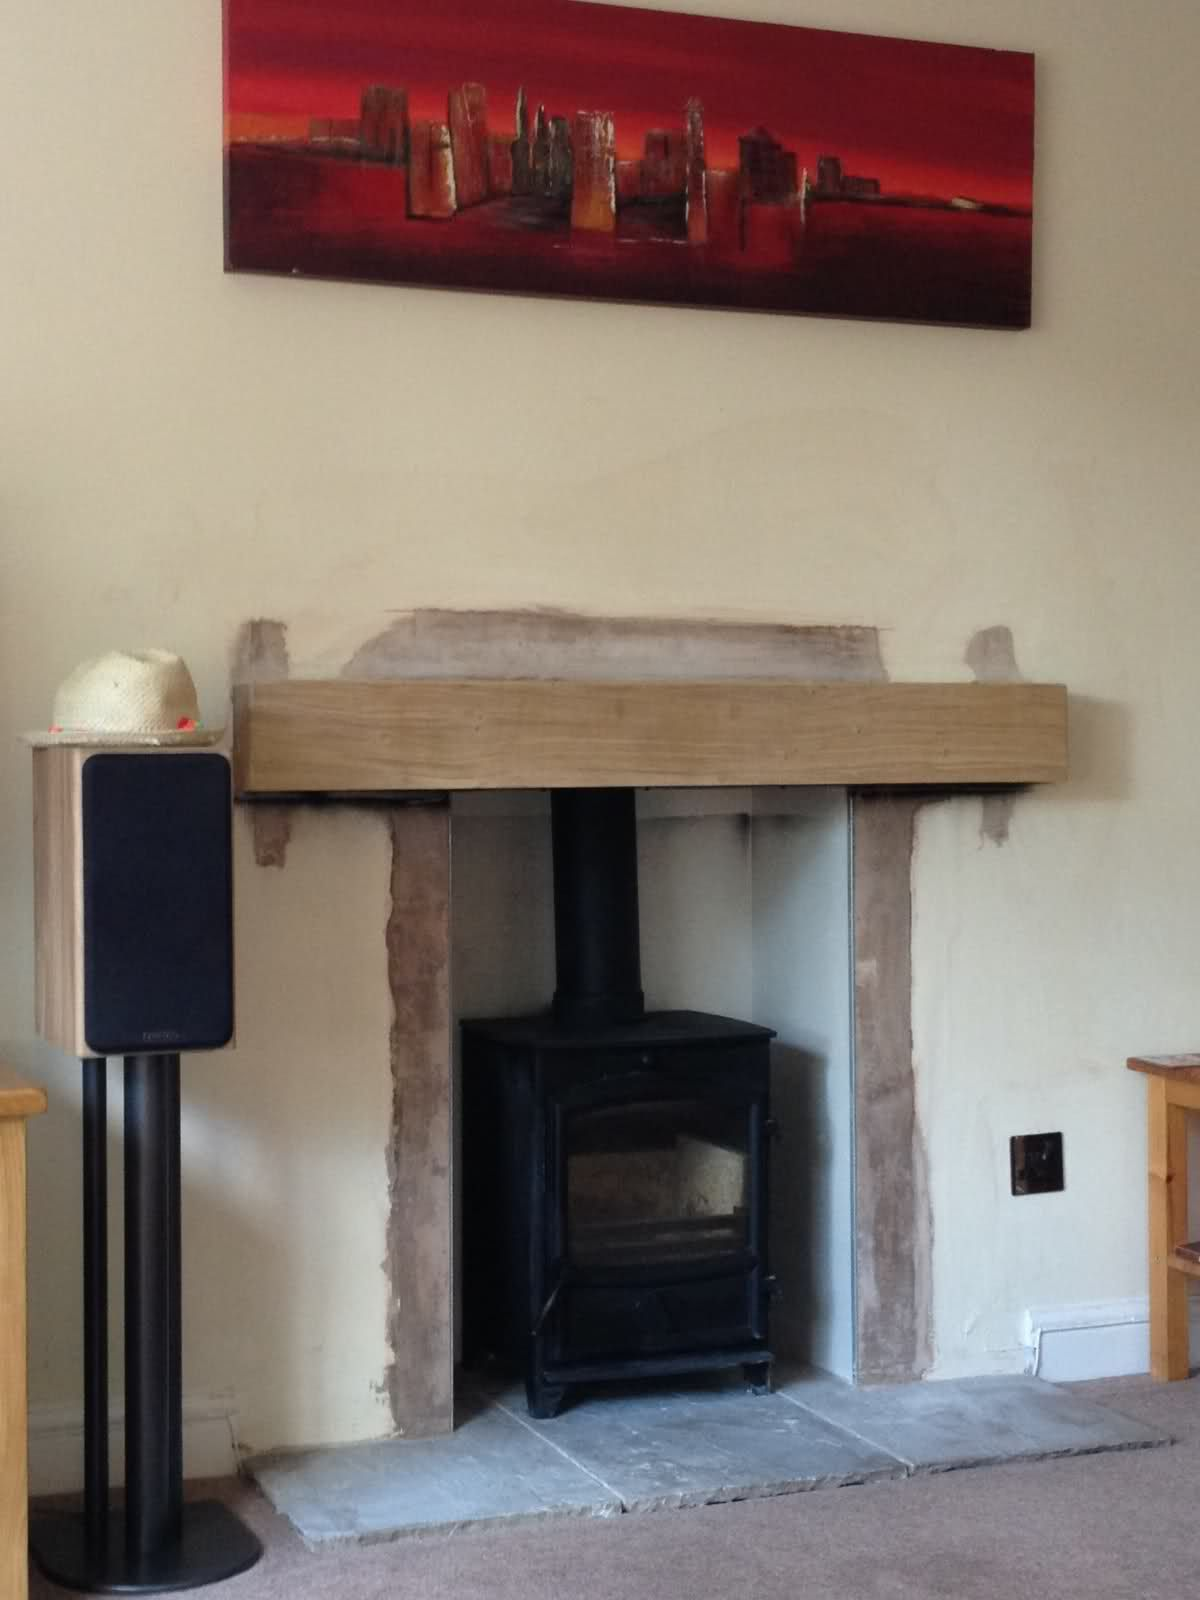 Singletrack Forum: Wood-burning stove question... - Post by ski ...